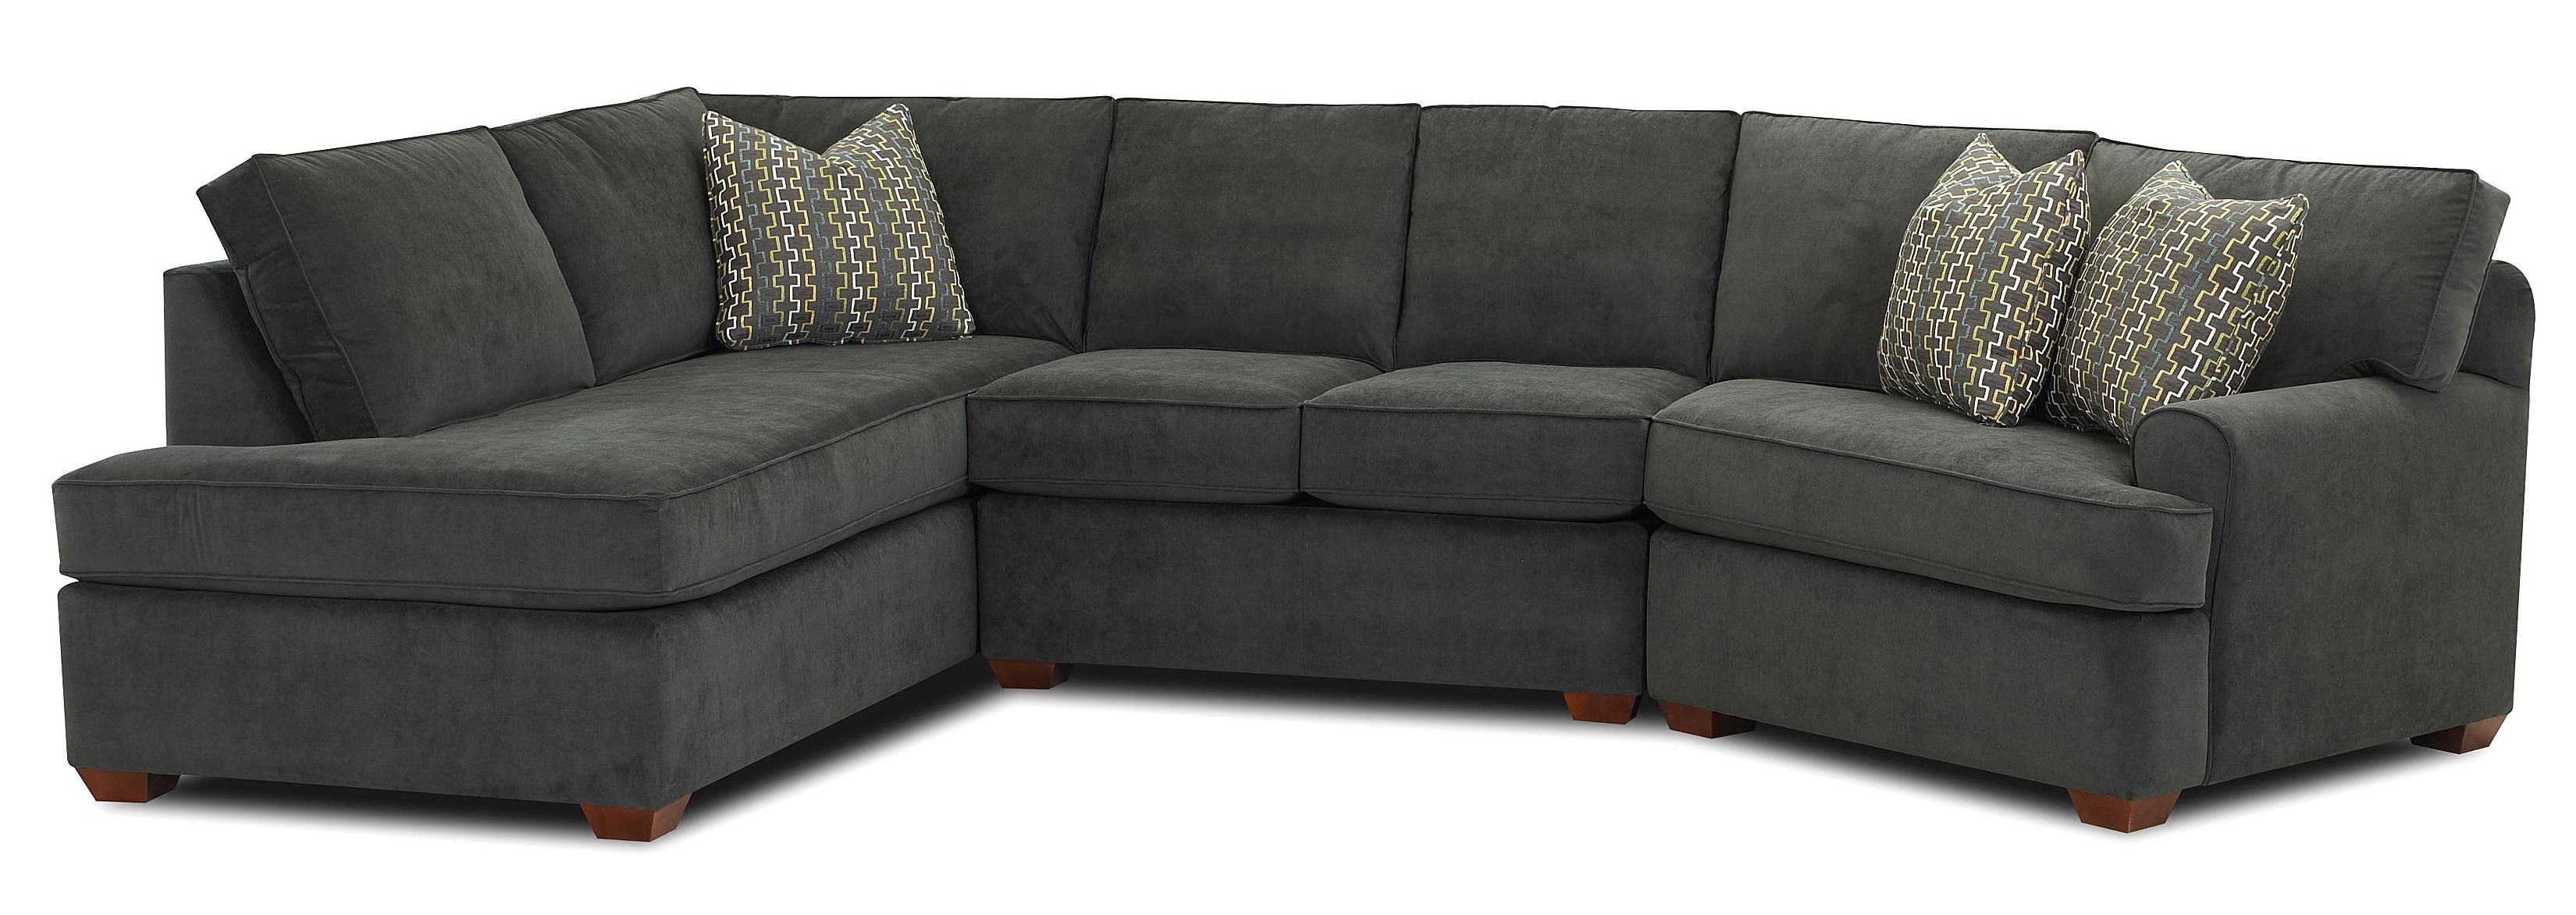 Hybrid Sectional Sofa by Klaussner Morris Home Furnishing